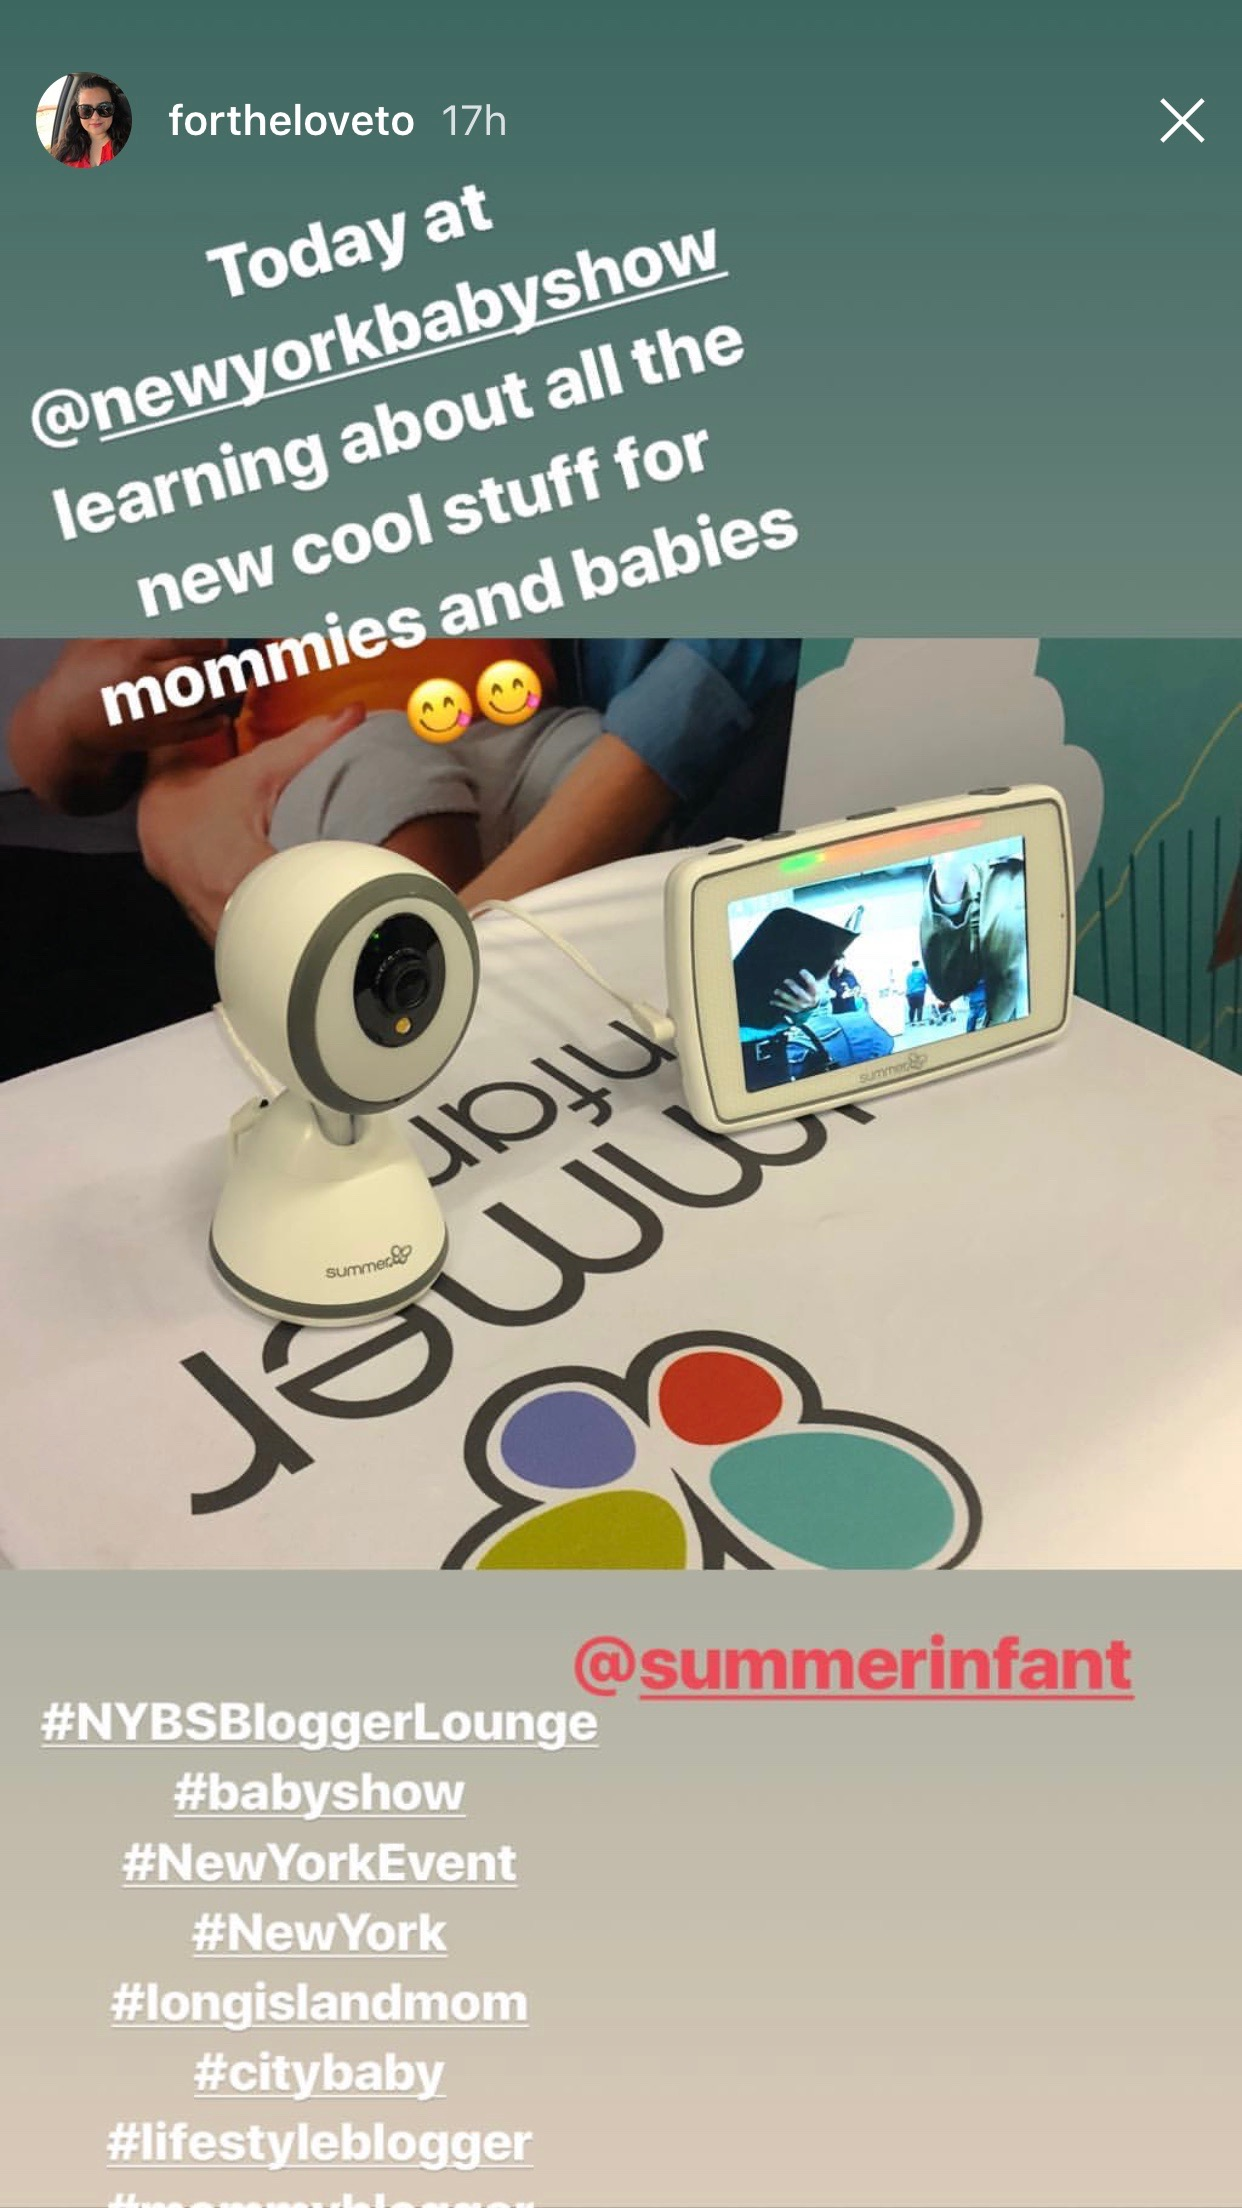 2018.05.19-20_For The Love To, Instagram Story_Summer Infant Baby Pixel Monitor.jpg